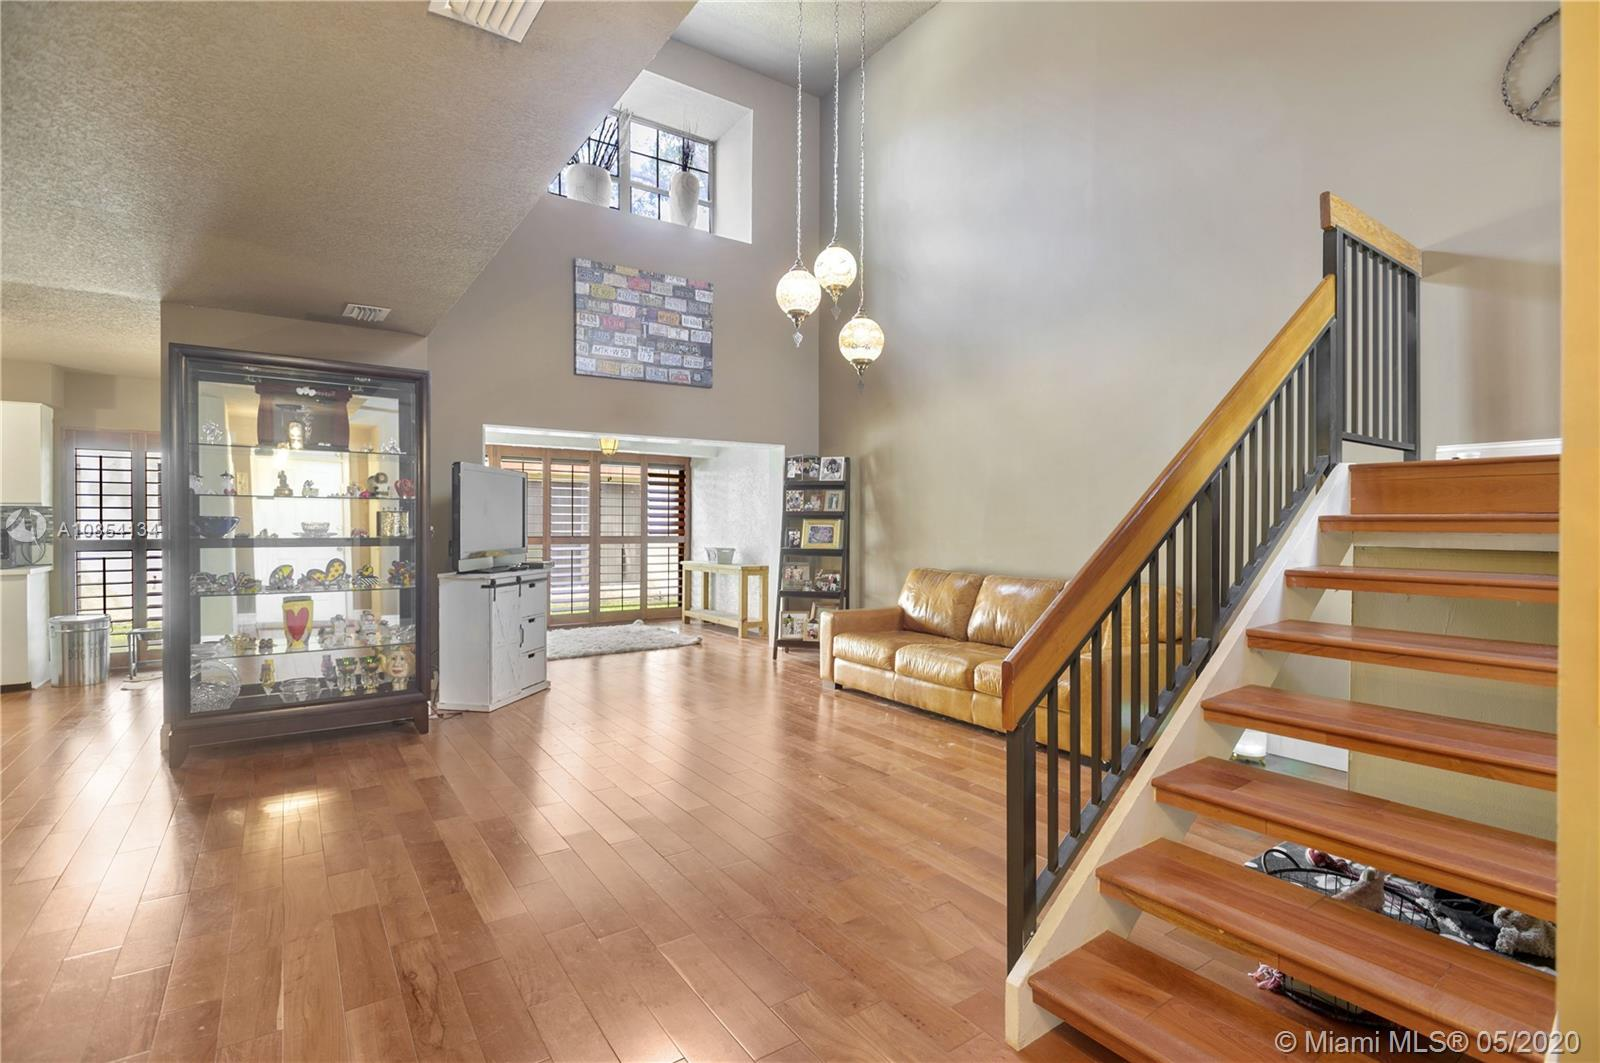 Astonishing gated community, two stories renovated townhouse, with an amazing high ceiling, very com